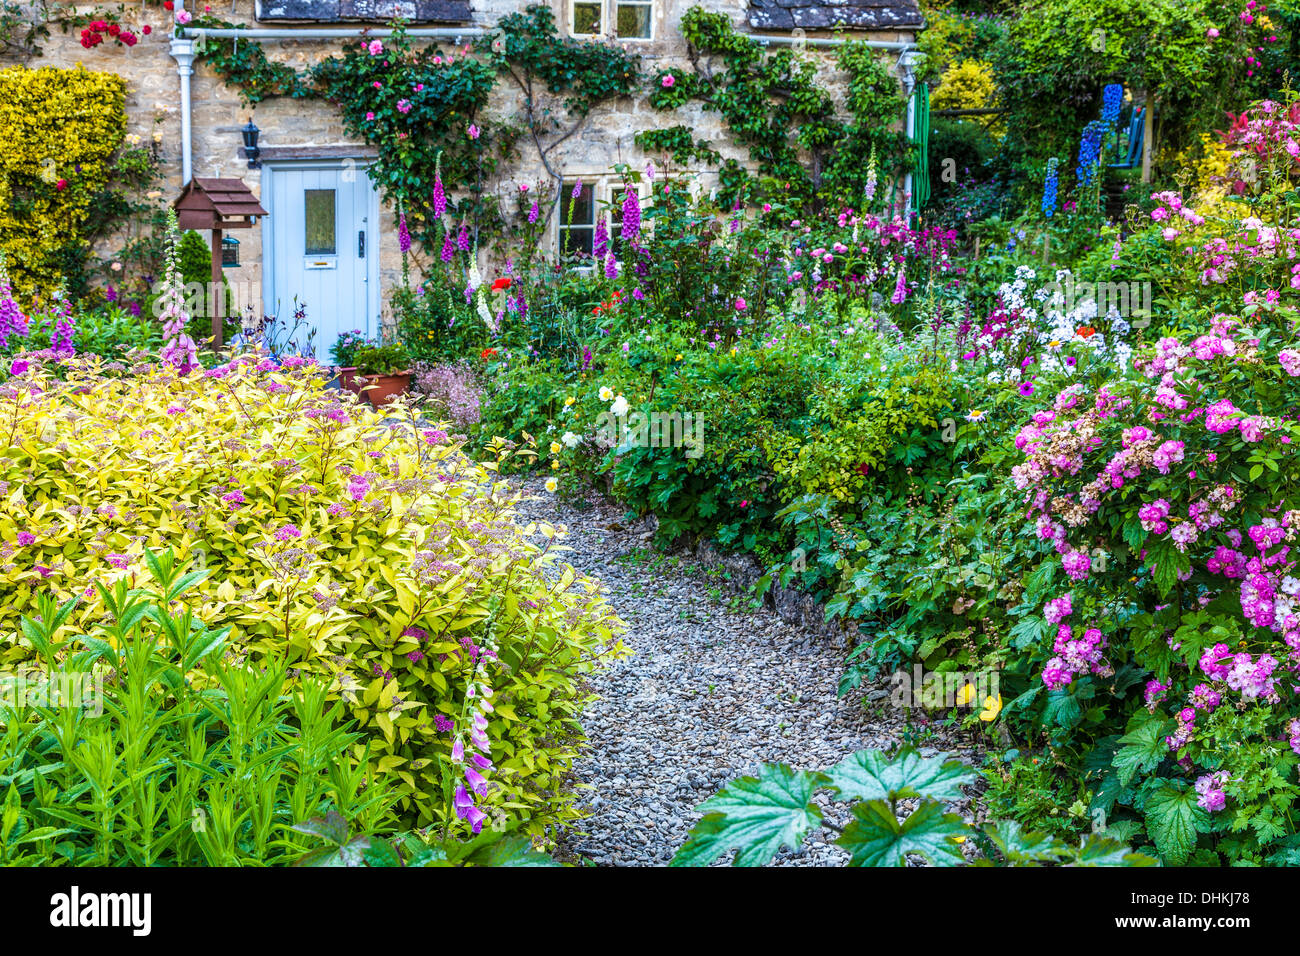 english cottage garden path flowers stock photos english cottage rh alamy com english cottage garden perennials traditional english cottage garden flowers